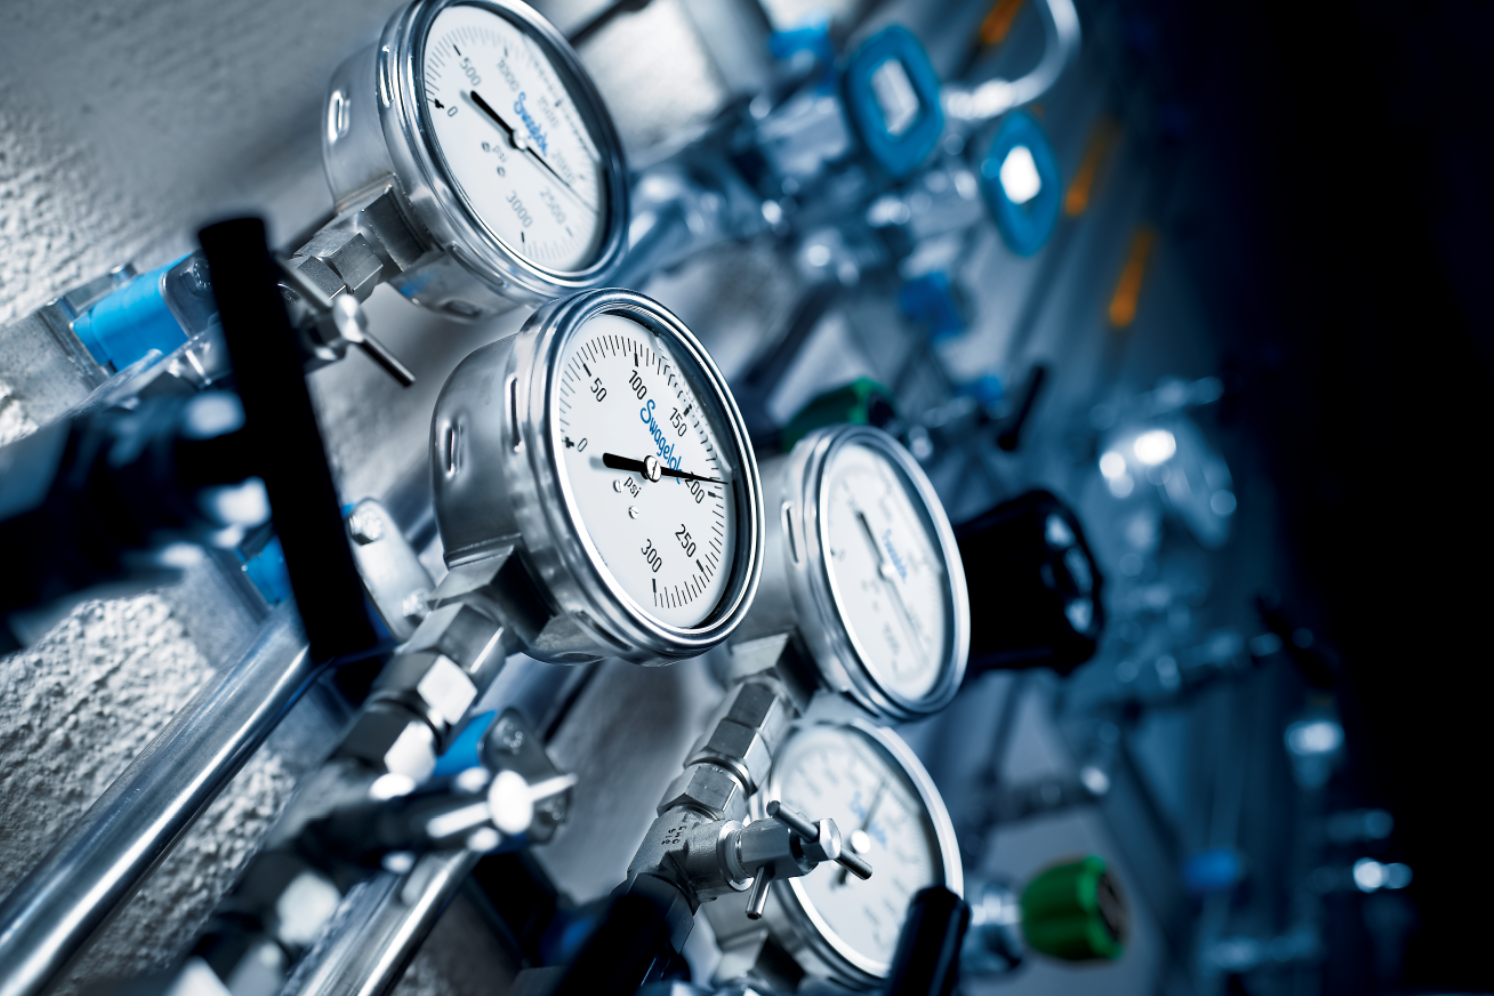 Take the Pressure off with Swagelok Valves, Gauges and Manifolds